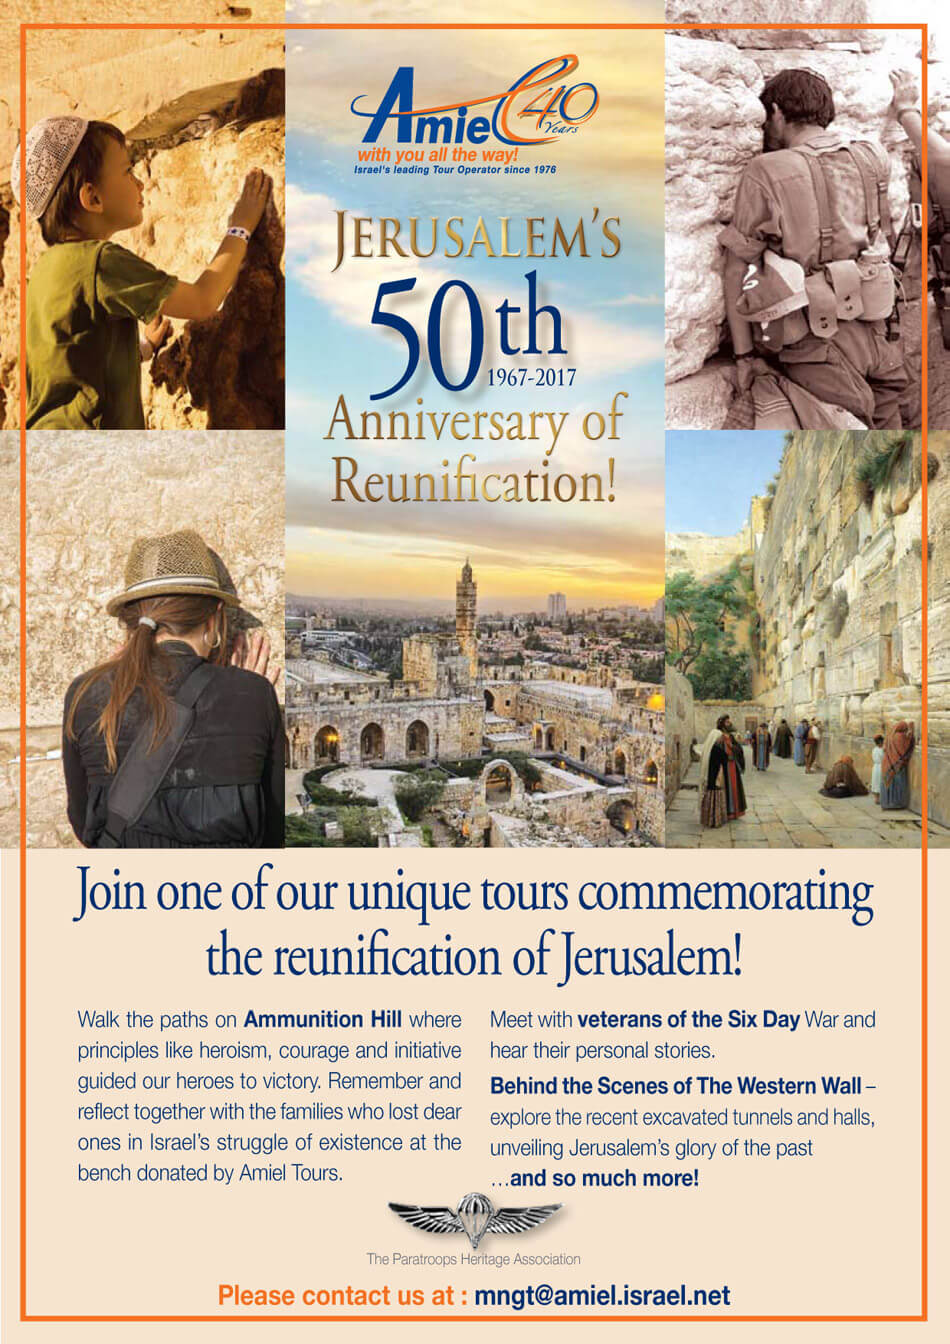 Jerusalem's 50th anniversary of Reunification, May 2017